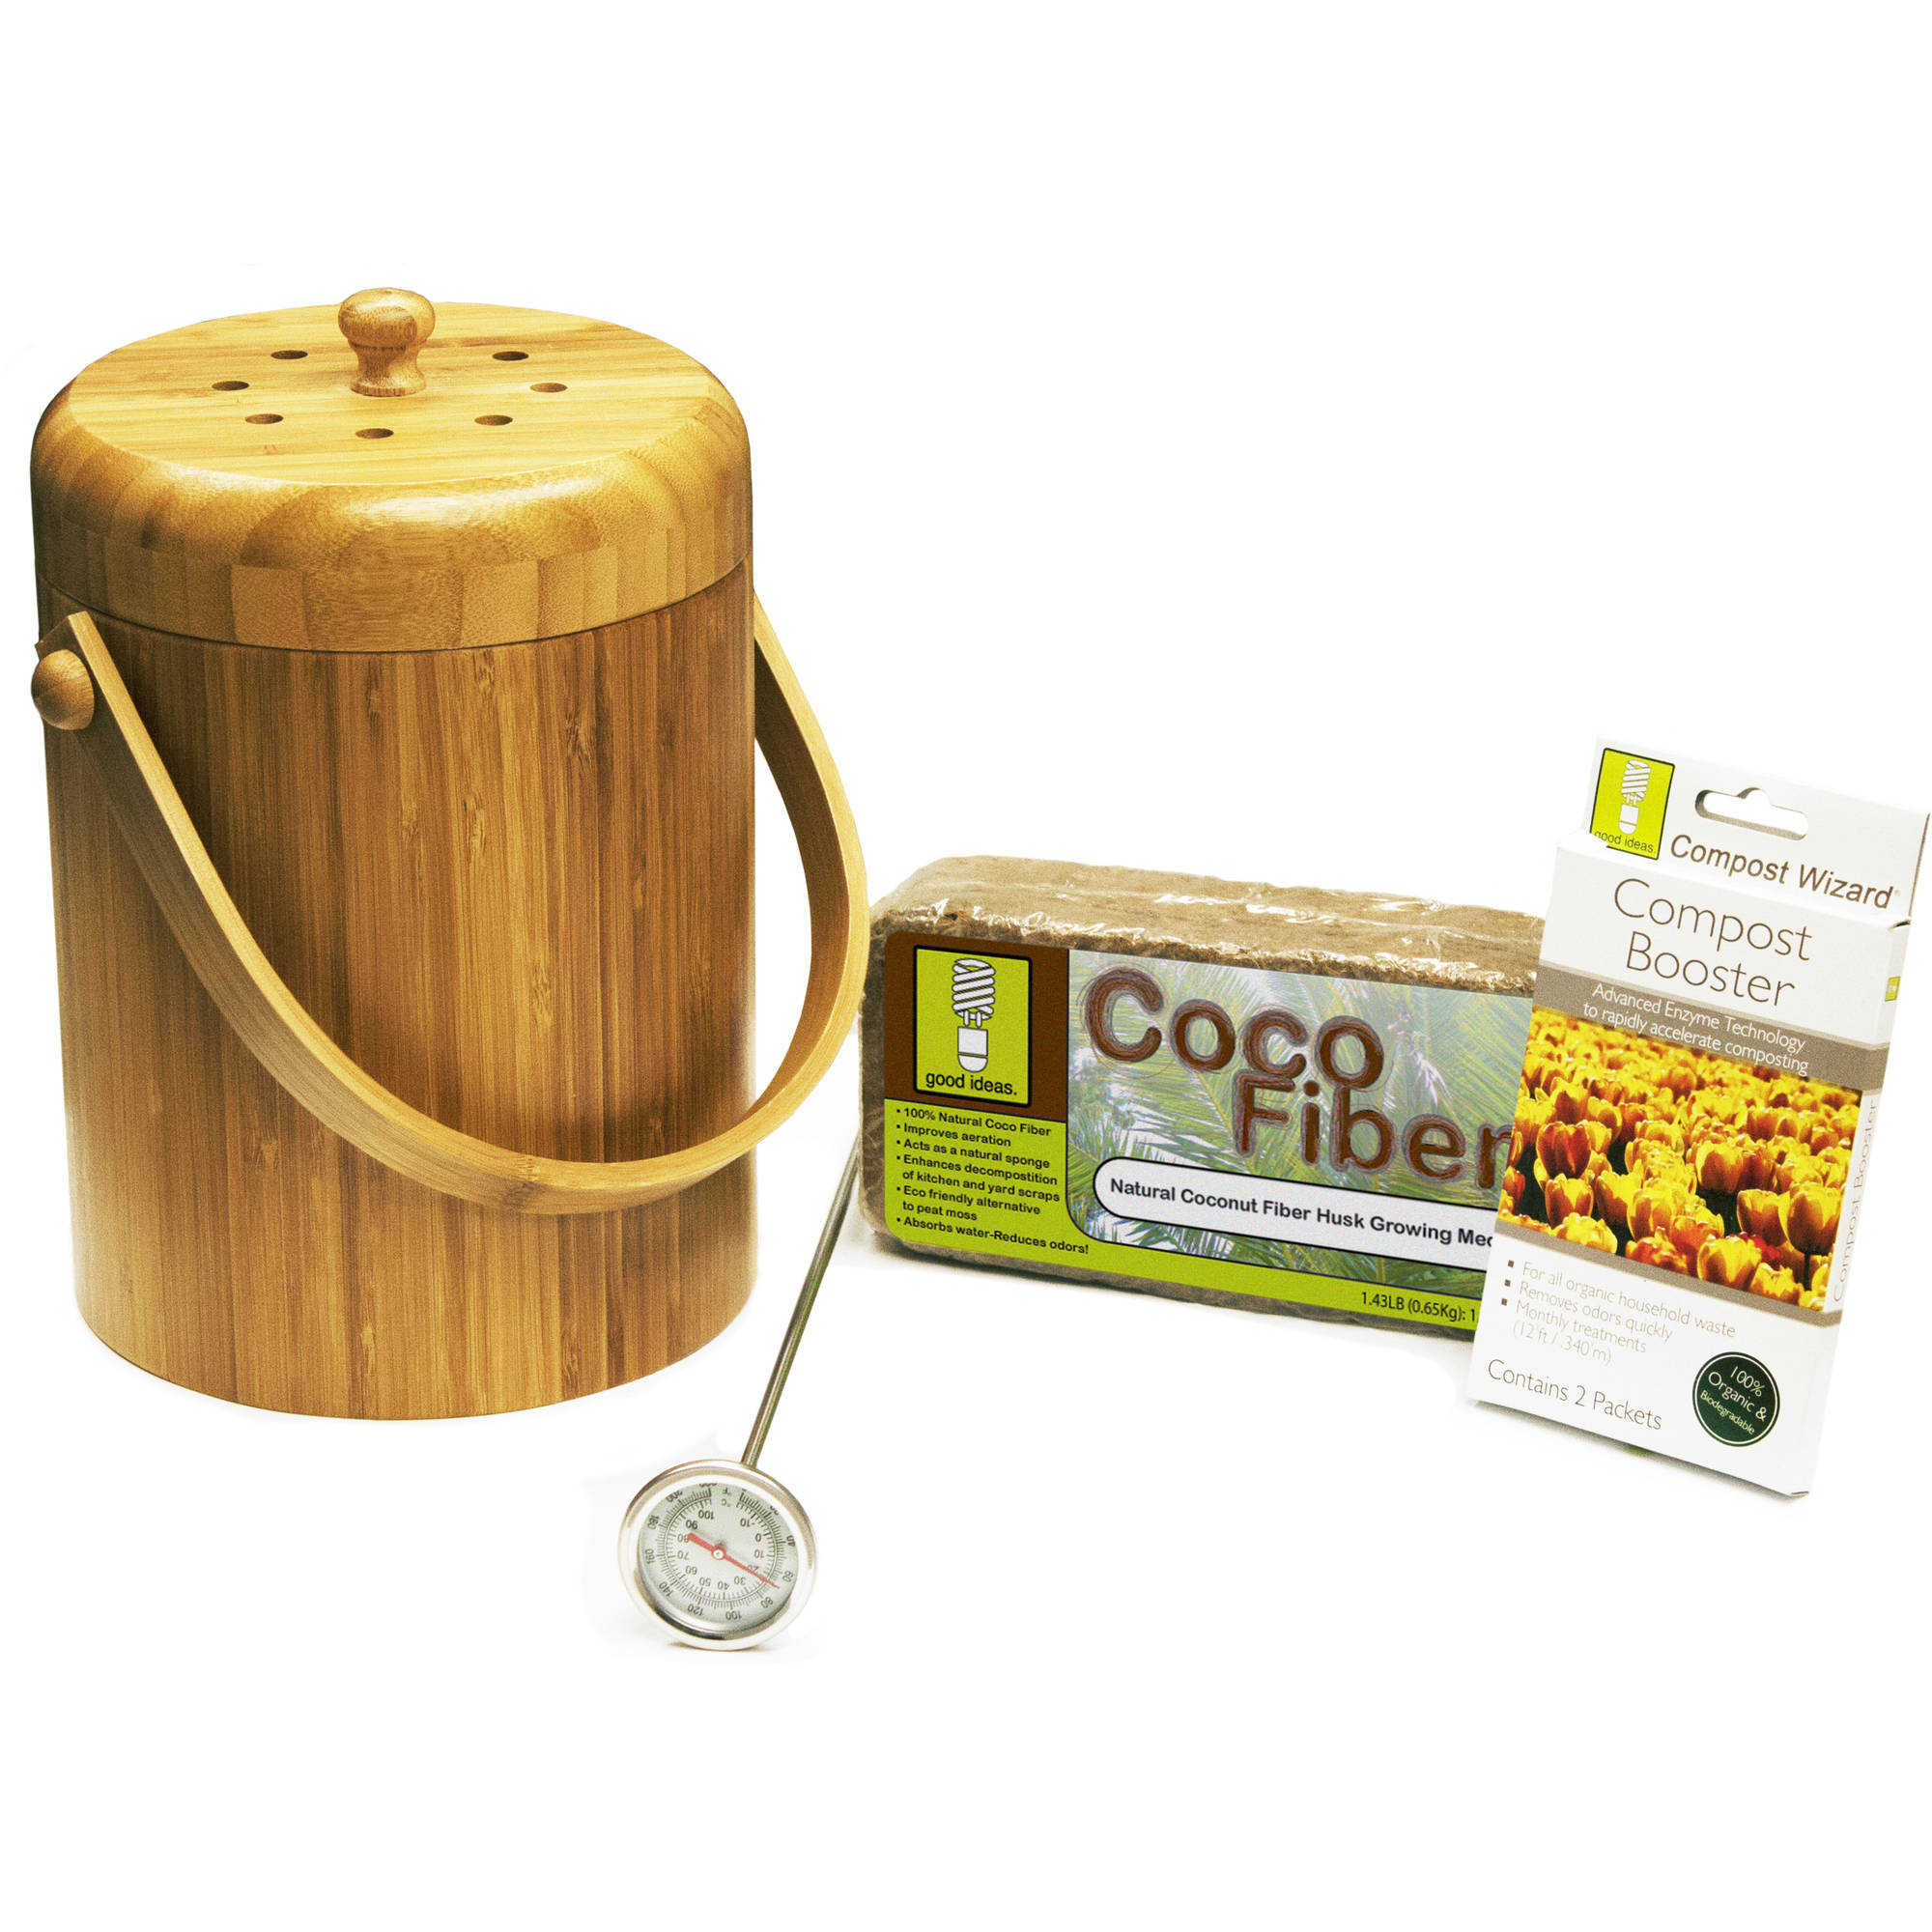 Compost Wizard Essentials Kit, Bamboo by Good Ideas, Inc.